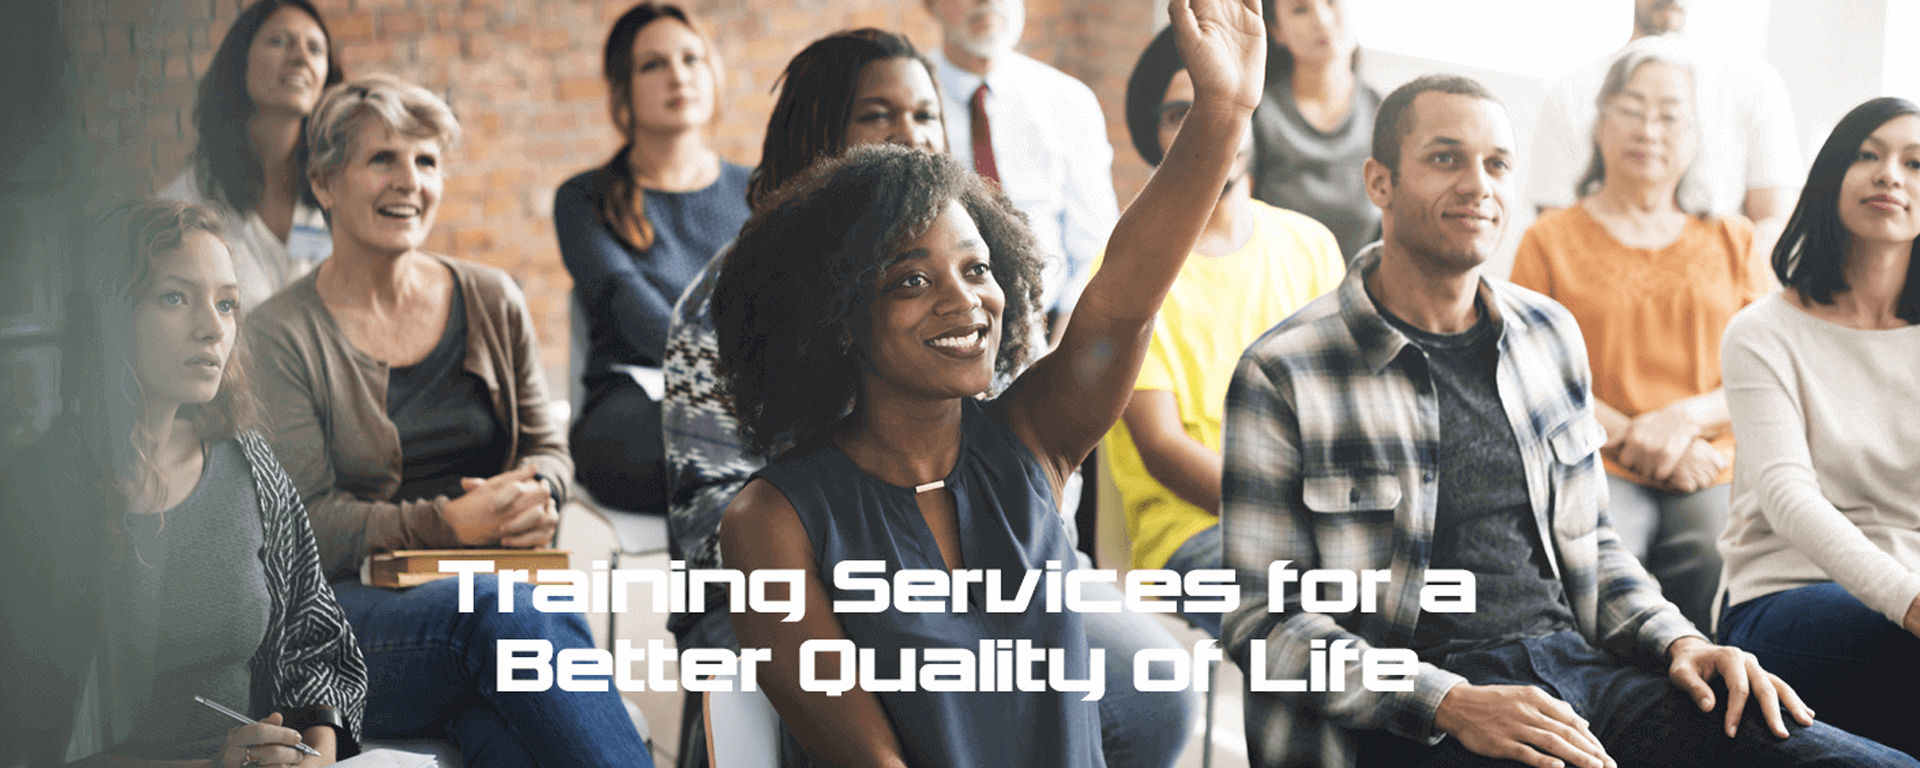 training services for a better quality of life